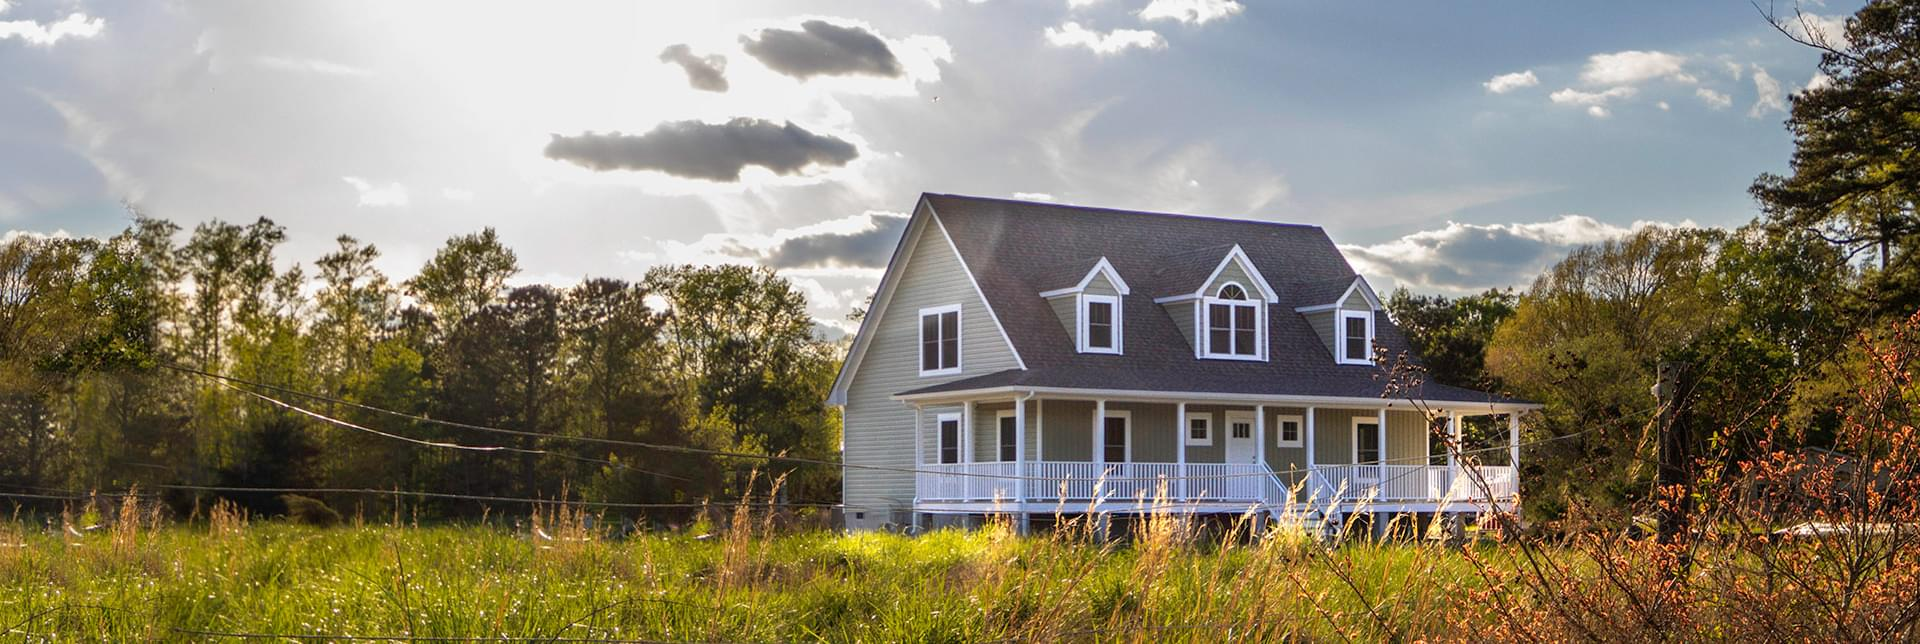 New Homes in Lenoir County NC